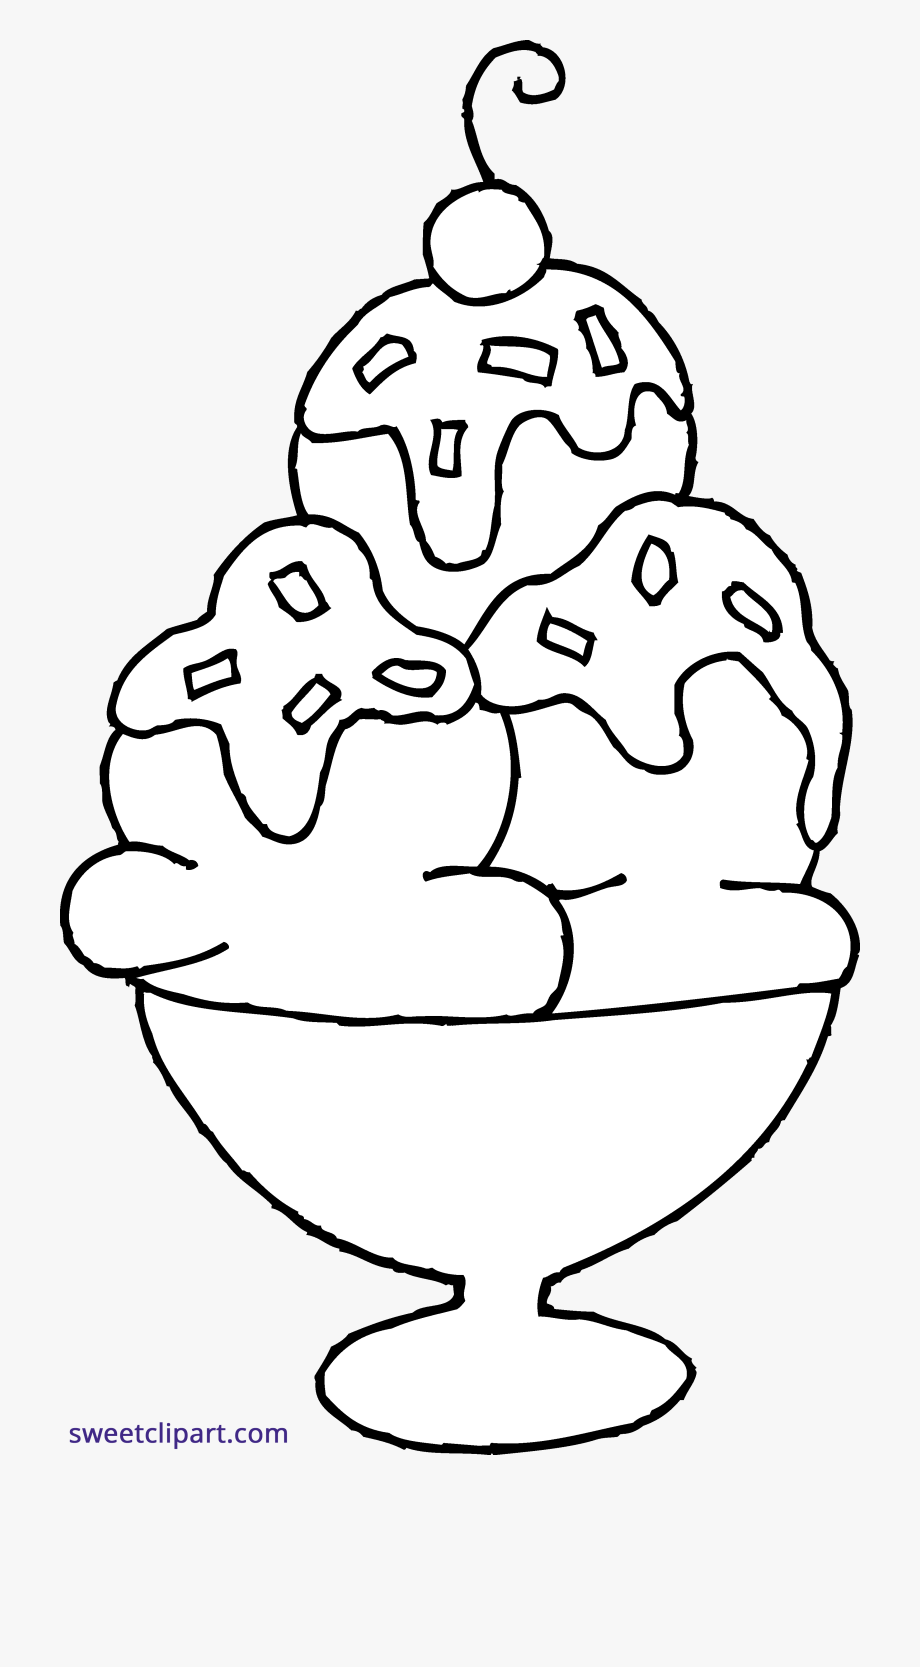 Sundae Coloring Pages Png Free Sundae Coloring Pages Png Transparent Images 86428 Pngio